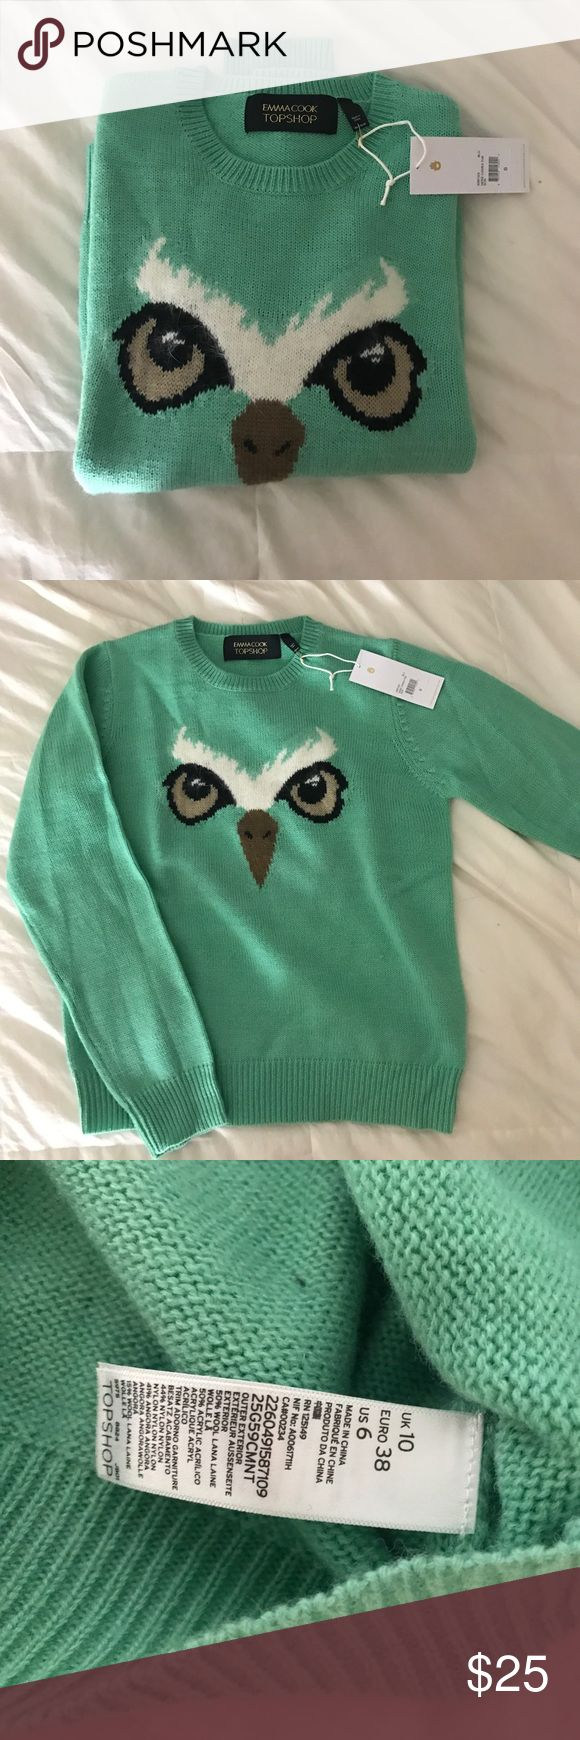 Top shop wool owl sweater Owl sweater from top shop. Collab with Emma cook design. 50% wool 50% acrylic Topshop Sweaters Crew & Scoop Necks